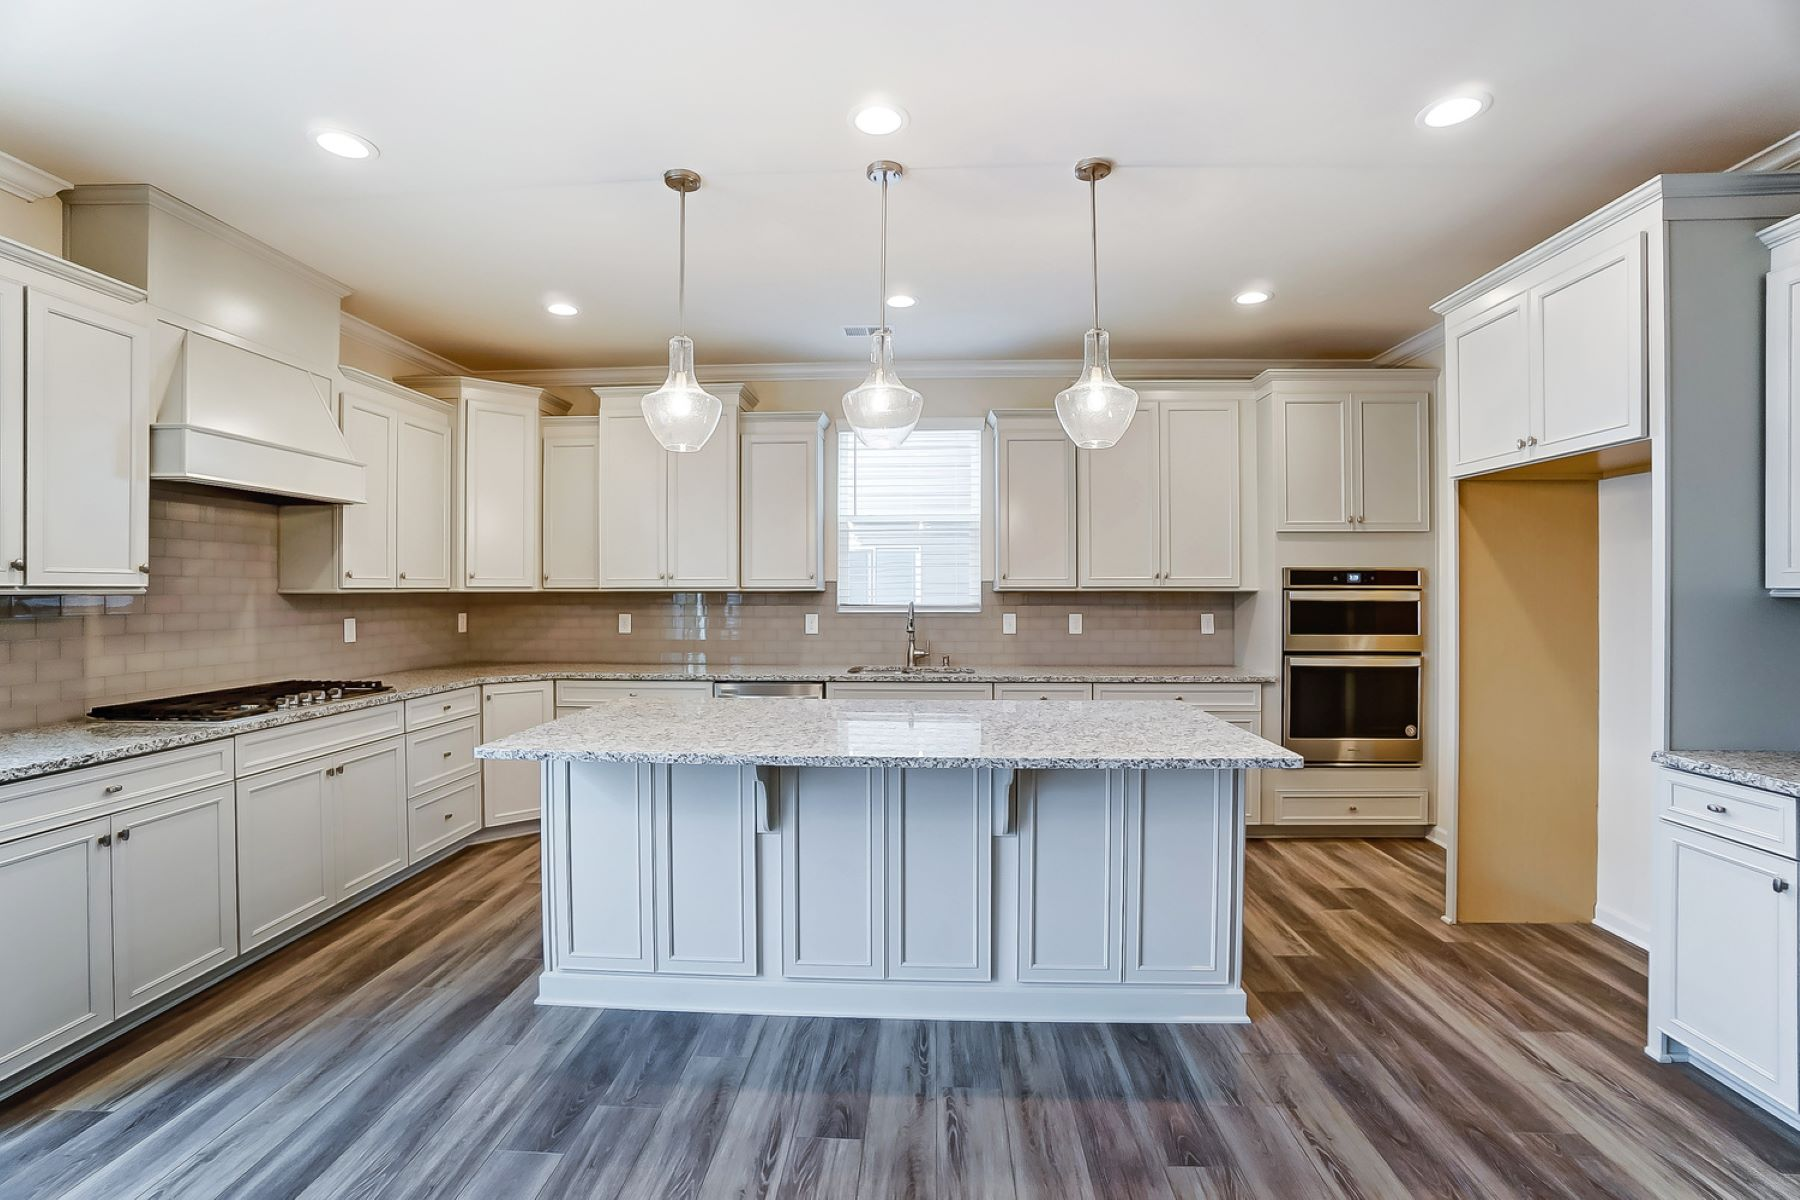 Marshall Plan Kitchen at Braeburn in Indian Trail North Carolina by Mattamy Homes